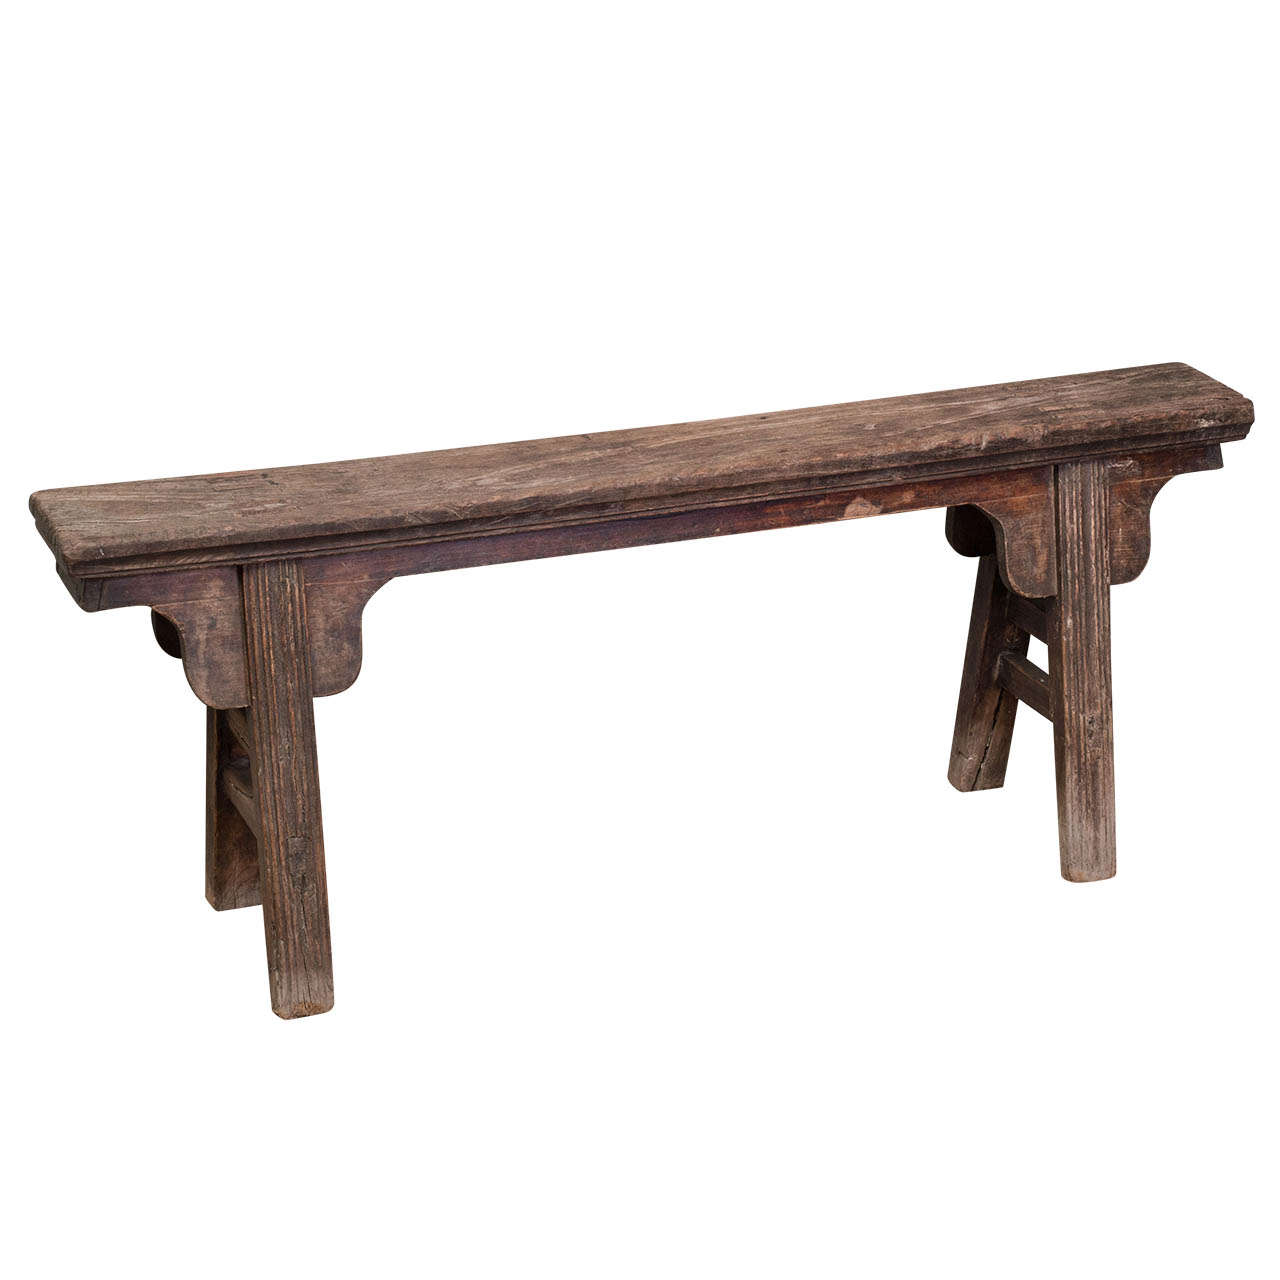 Chinese rustic narrow bench at 1stdibs for Furniture 4 u